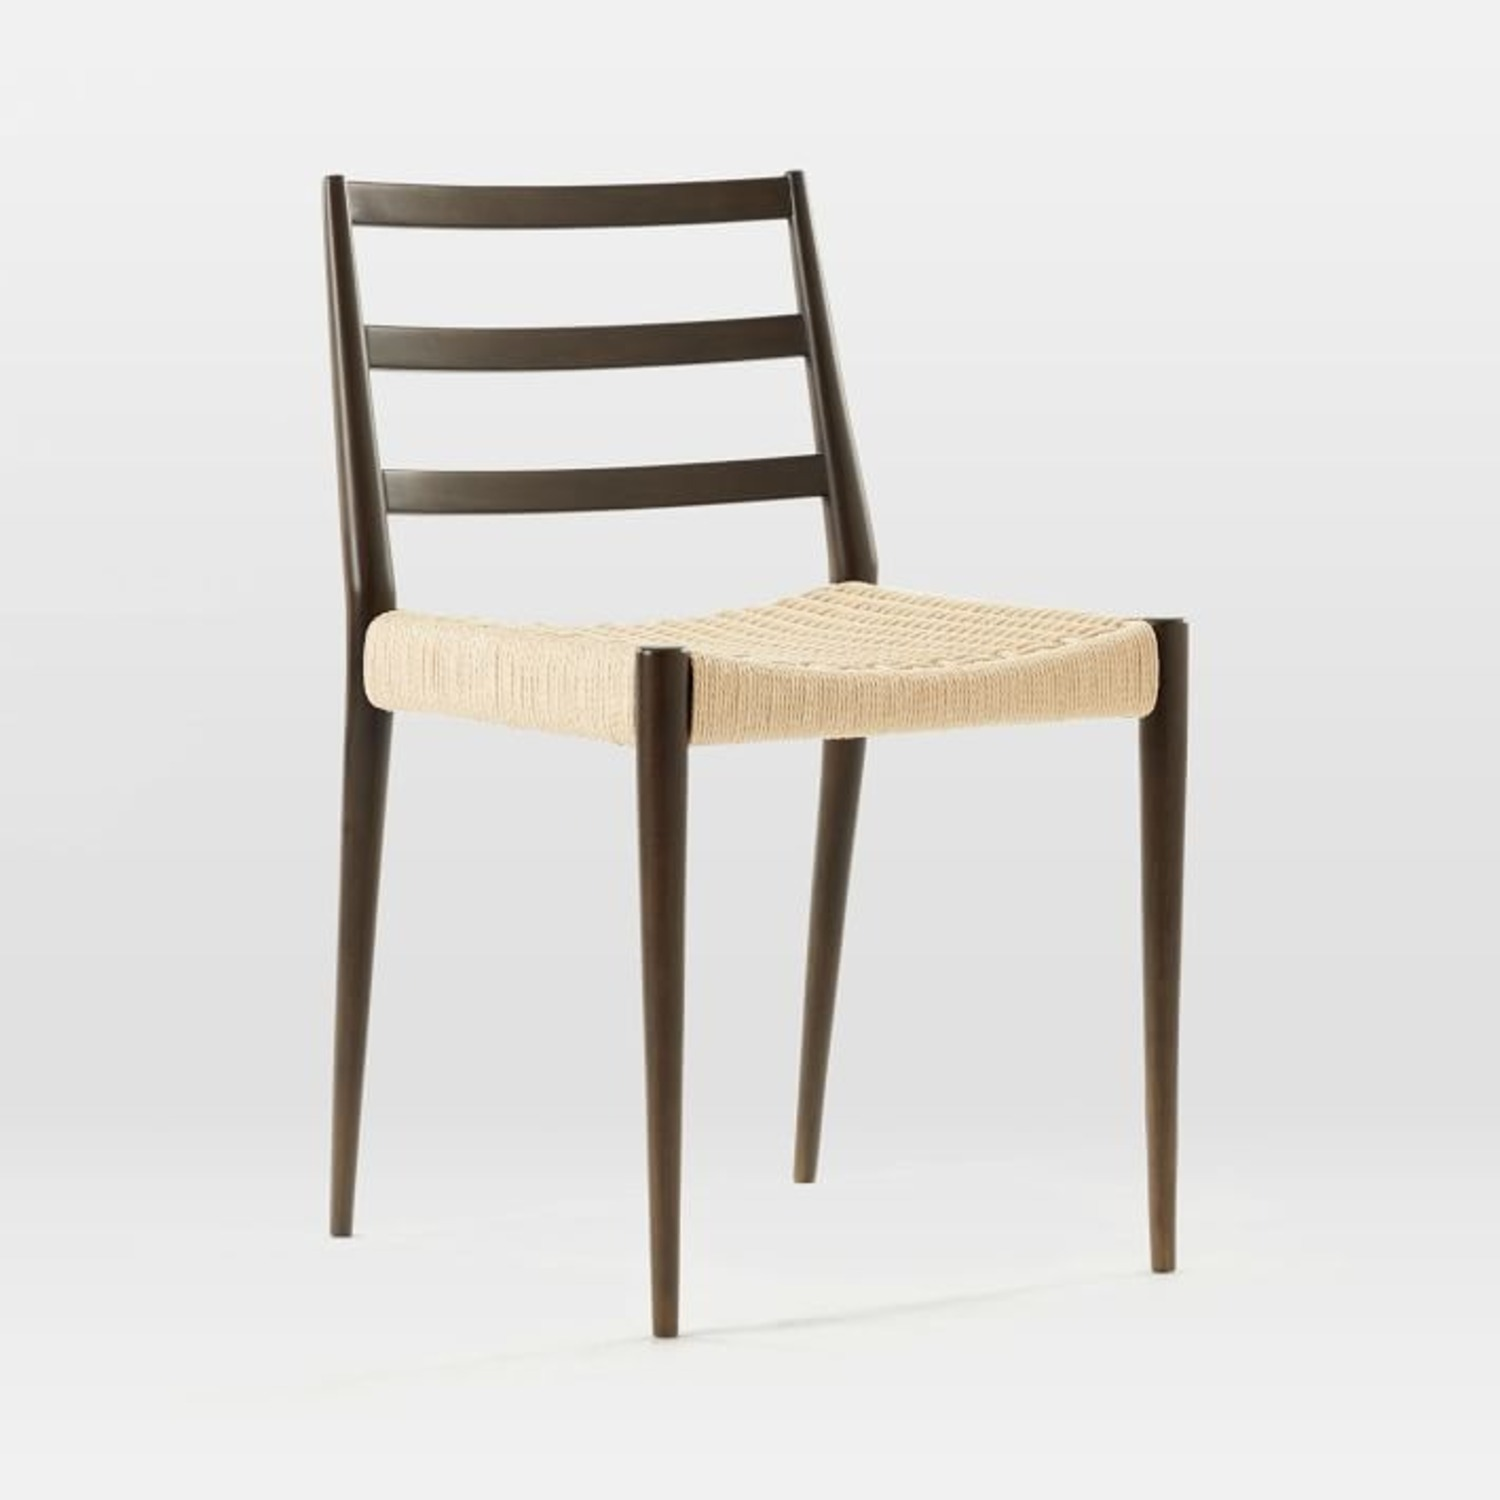 West Elm Holland Woven Dining Chair - image-3